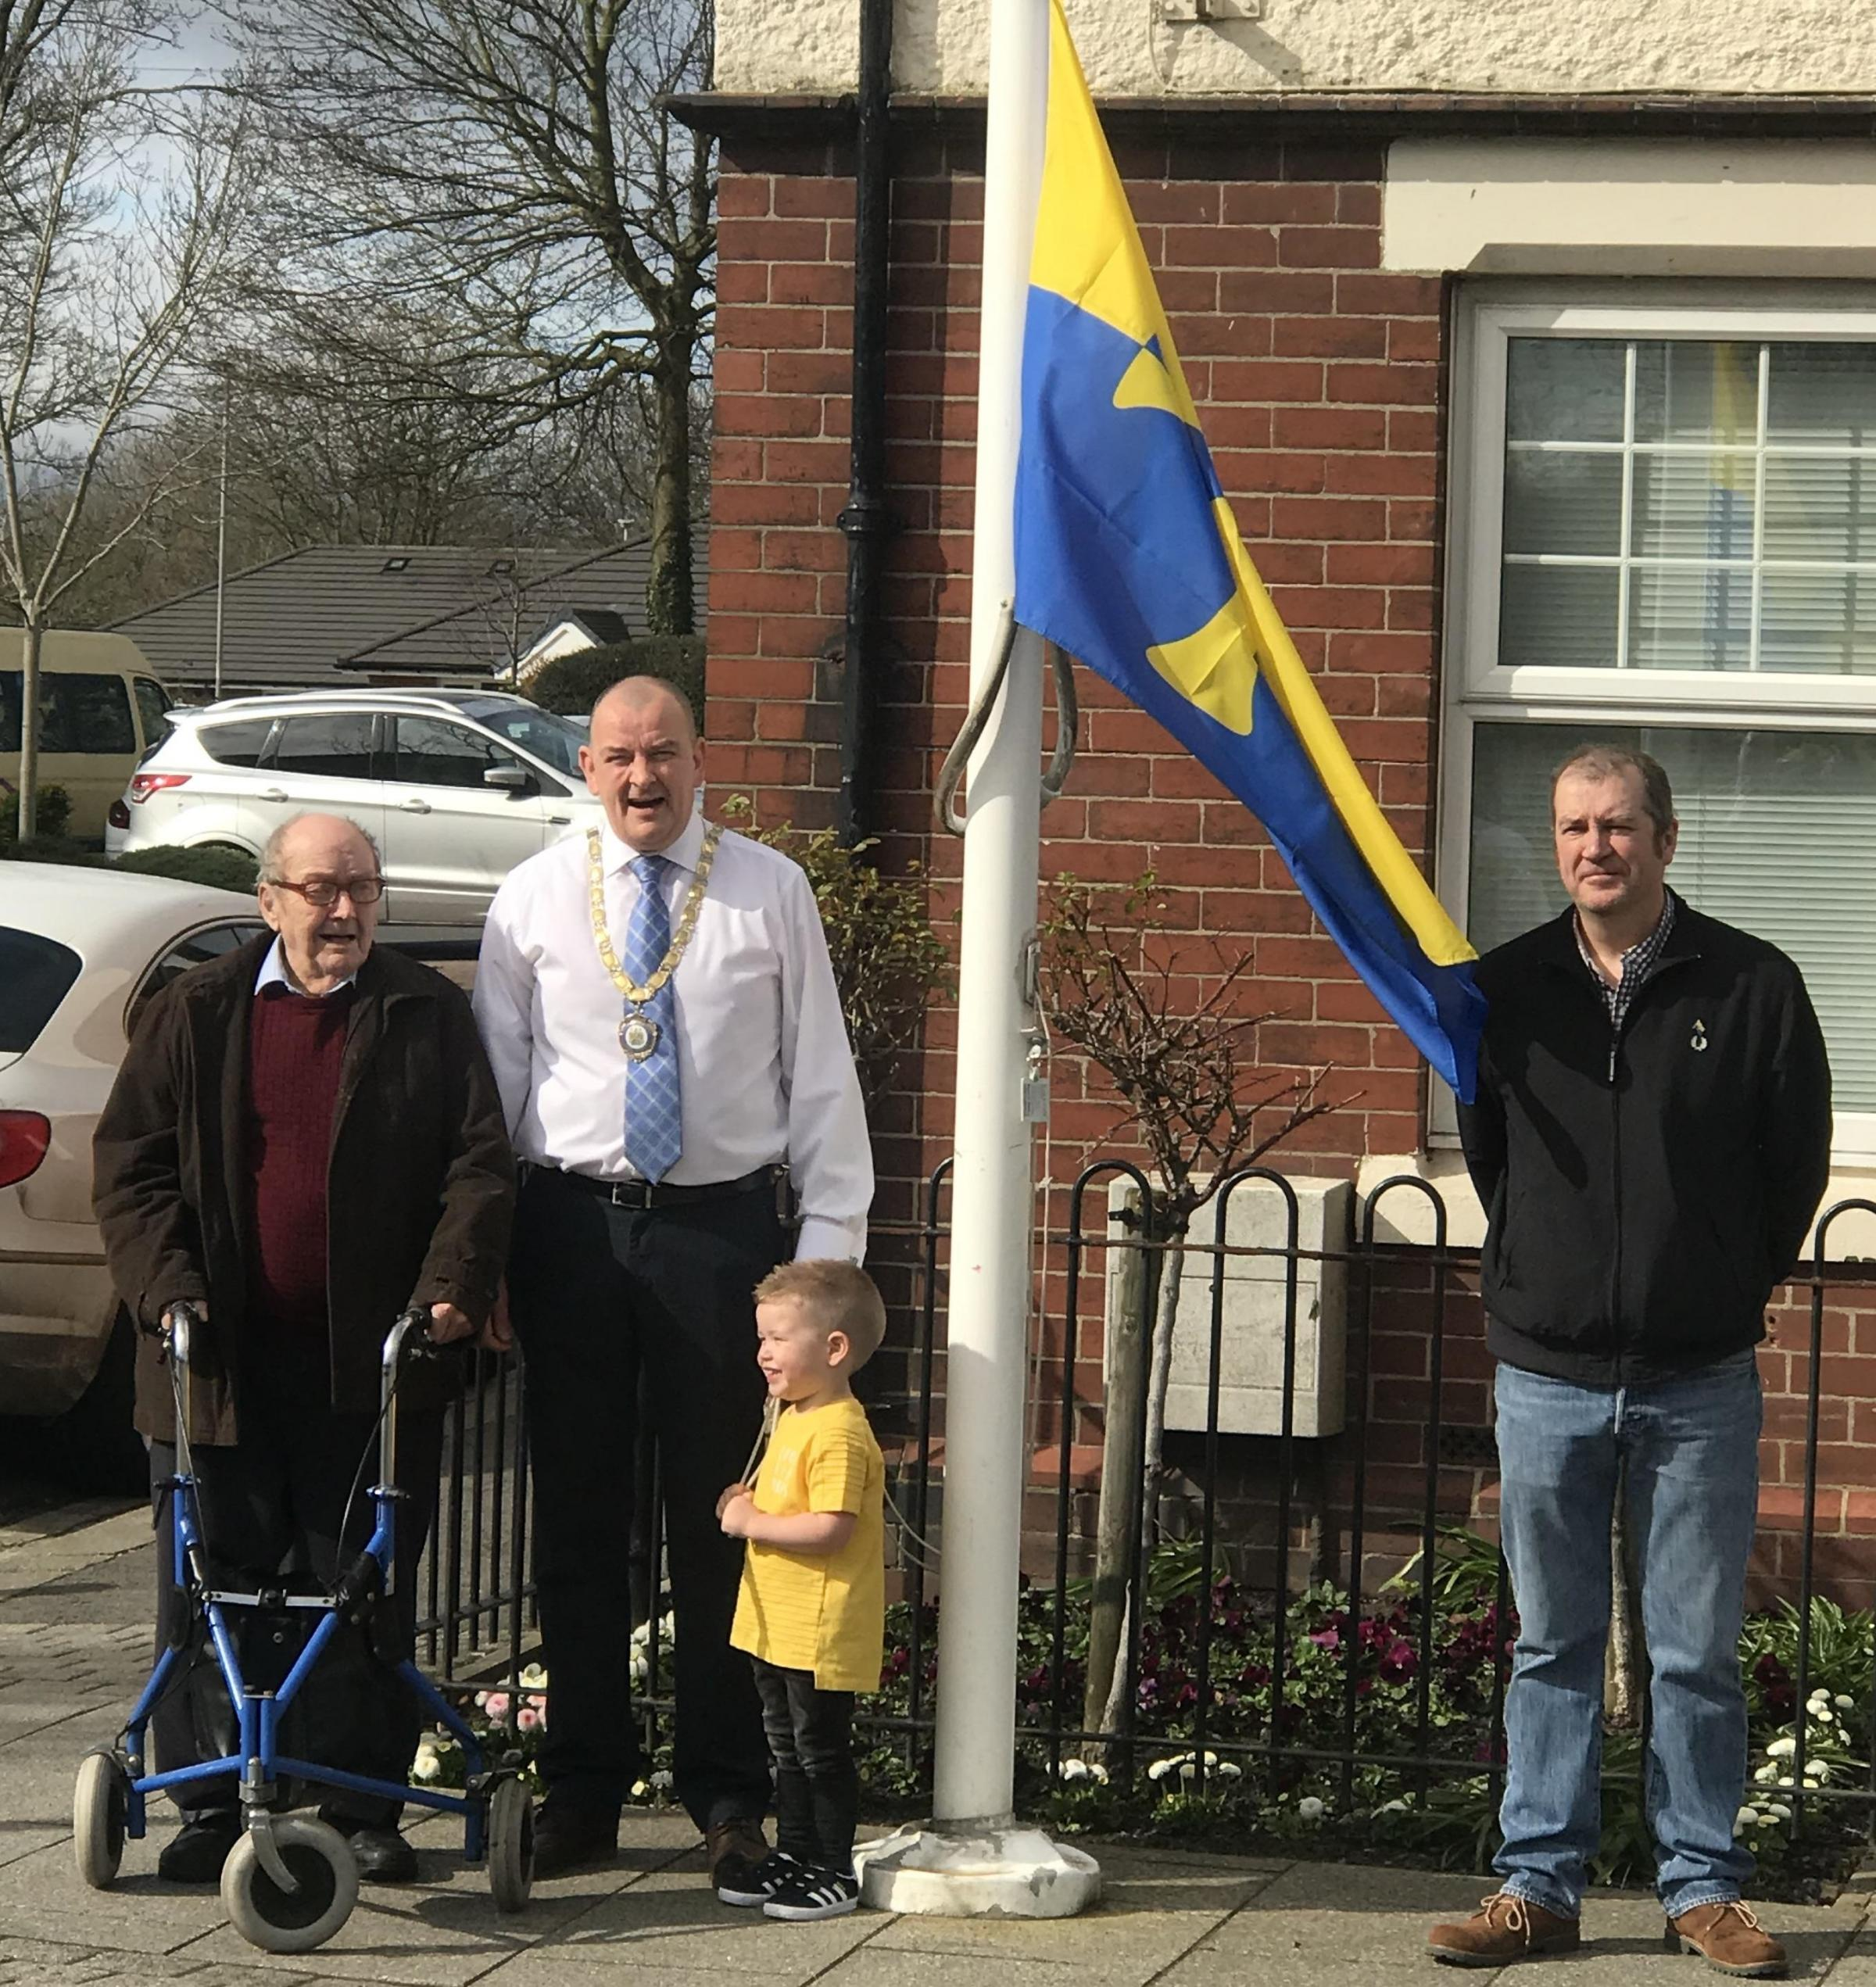 EVENT: Raising the Flag of County Durham in Chilton